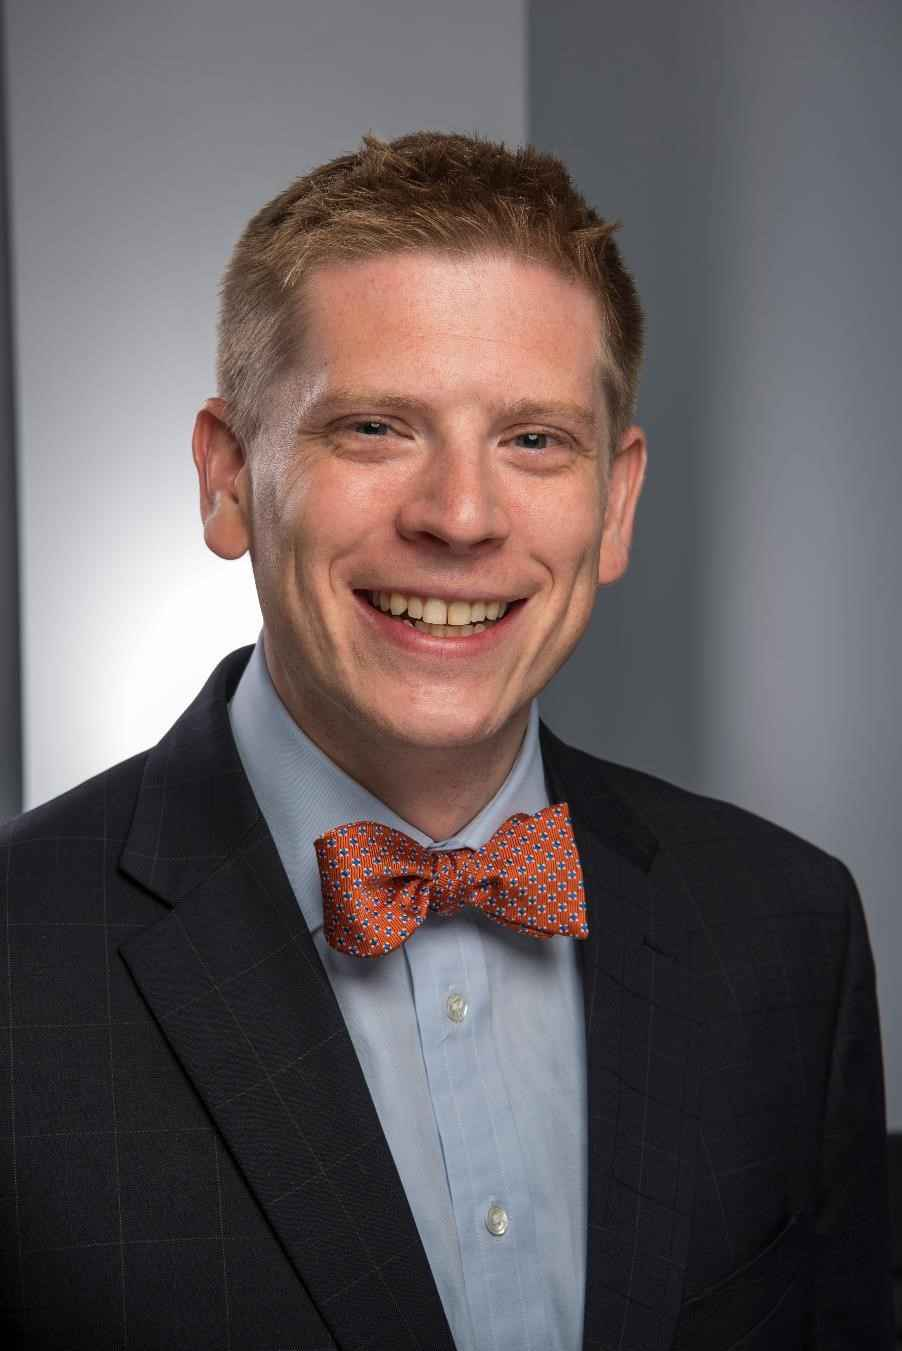 Dr. Micah Kubic, incoming Executive Director of the American Civil Liberties Union (ACLU) of Florida.